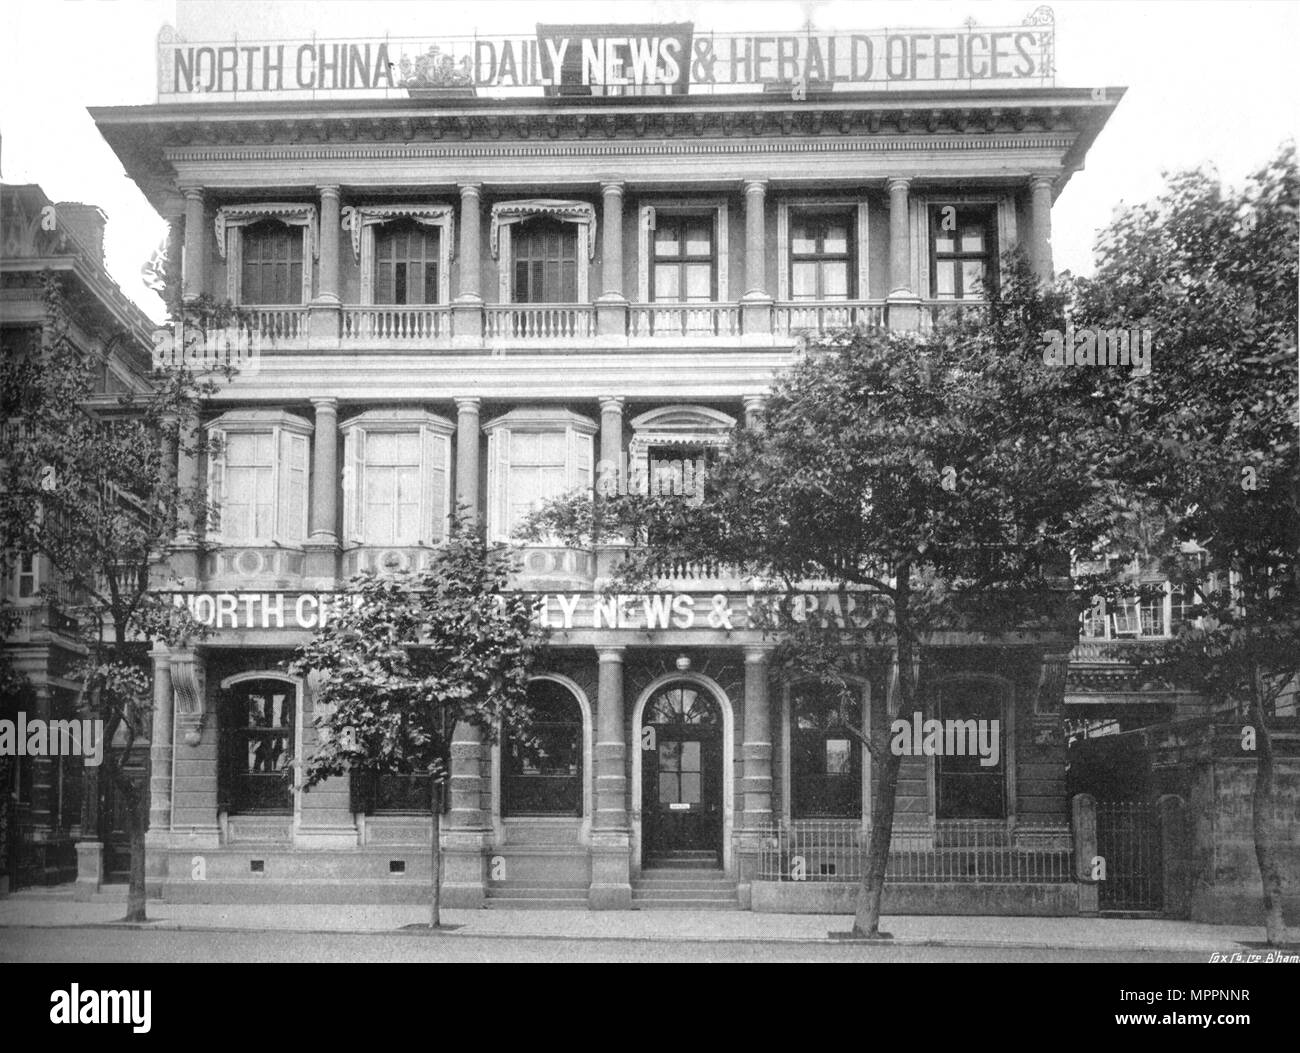 'North China Daily News & Herald Offices', 1910. Artist: Cox Company Ltd. - Stock Image